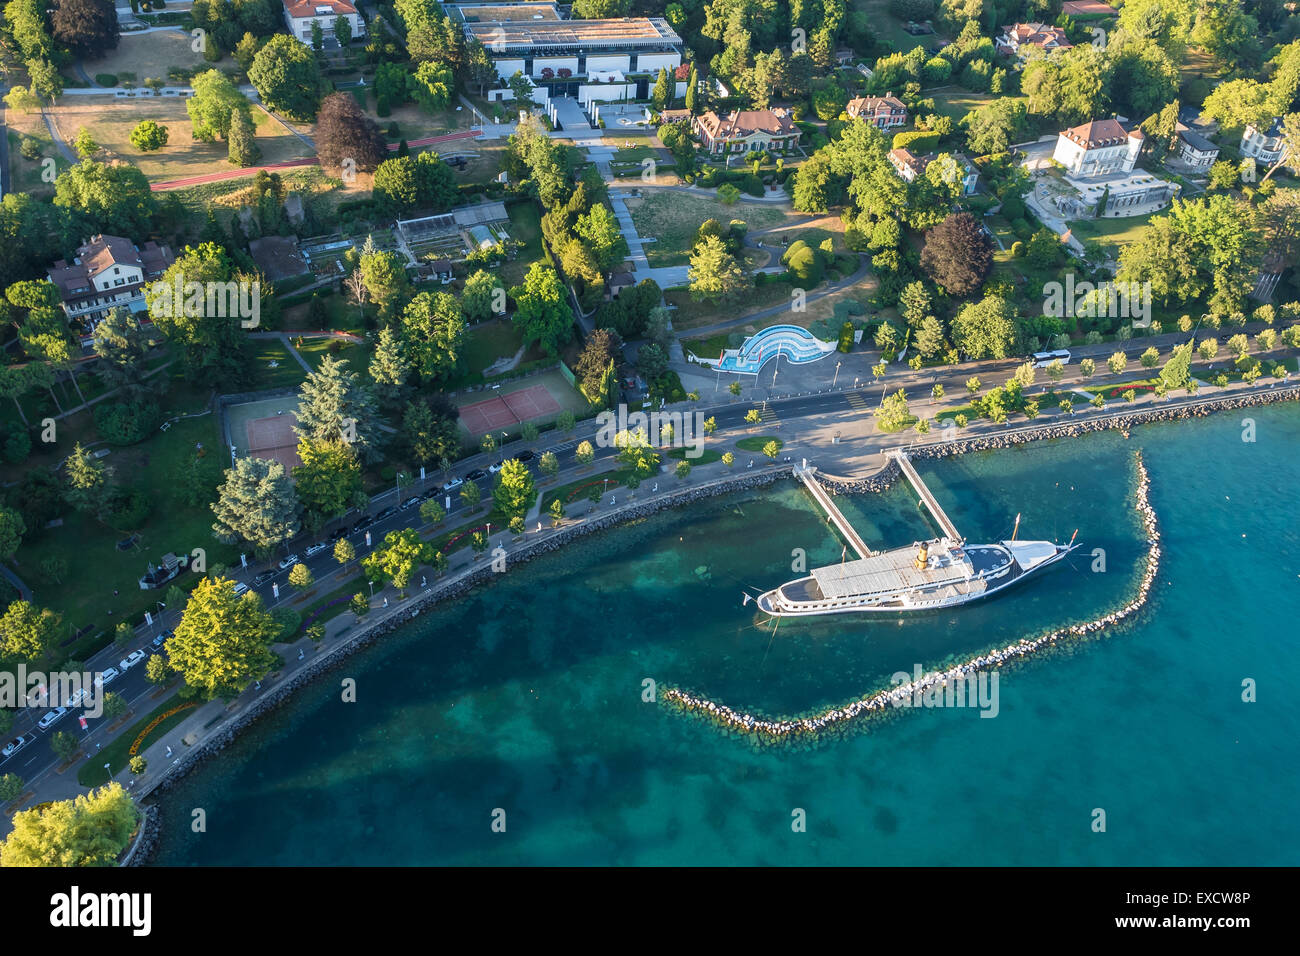 Aerial view of Leman lake -  Lausanne city in Switzerland - Stock Image